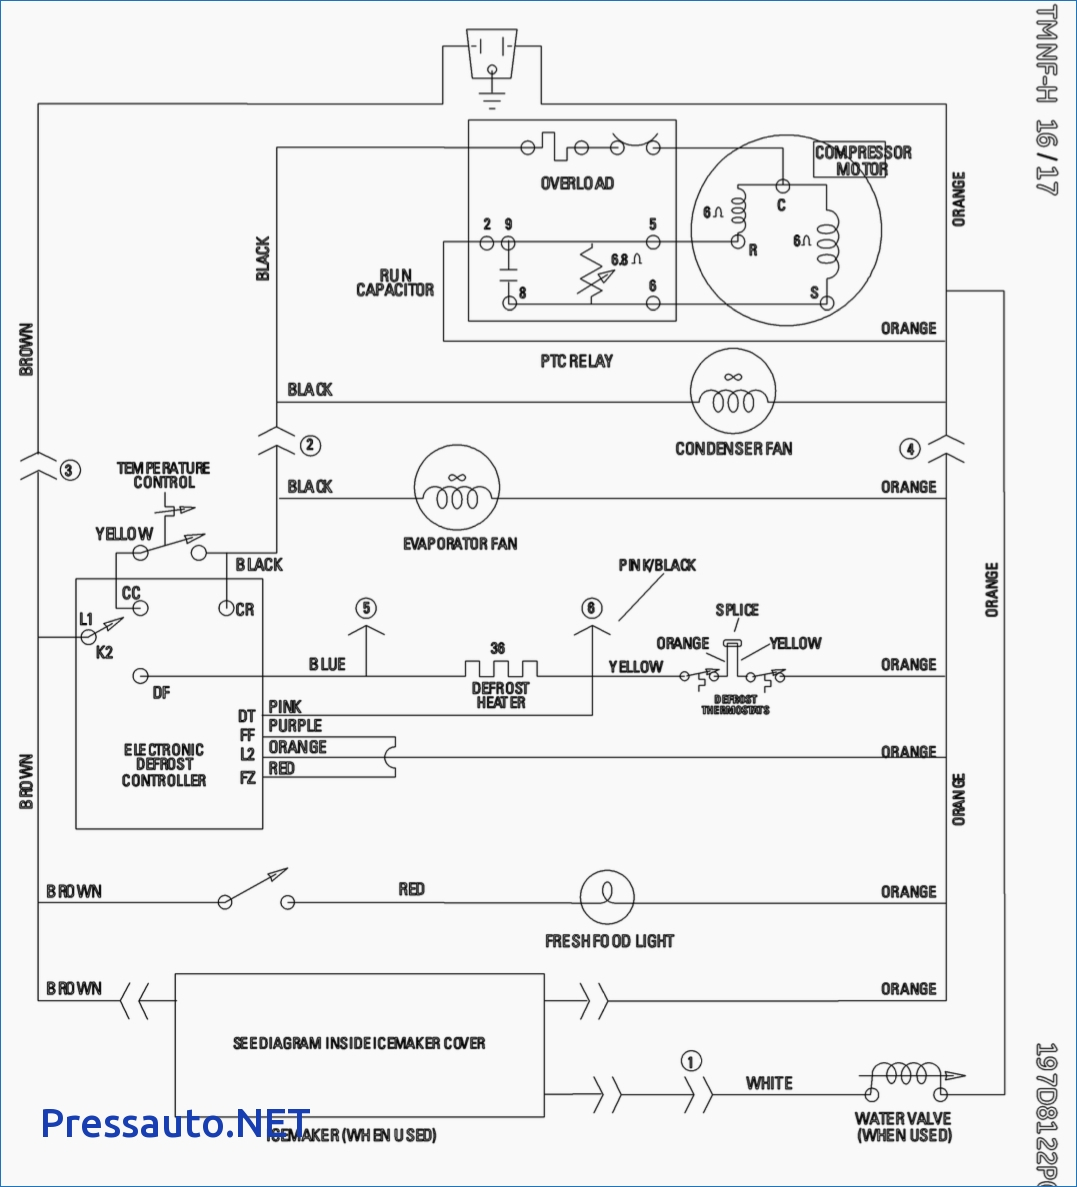 Gallery Of Whirlpool Fridge Wiring Diagram Download